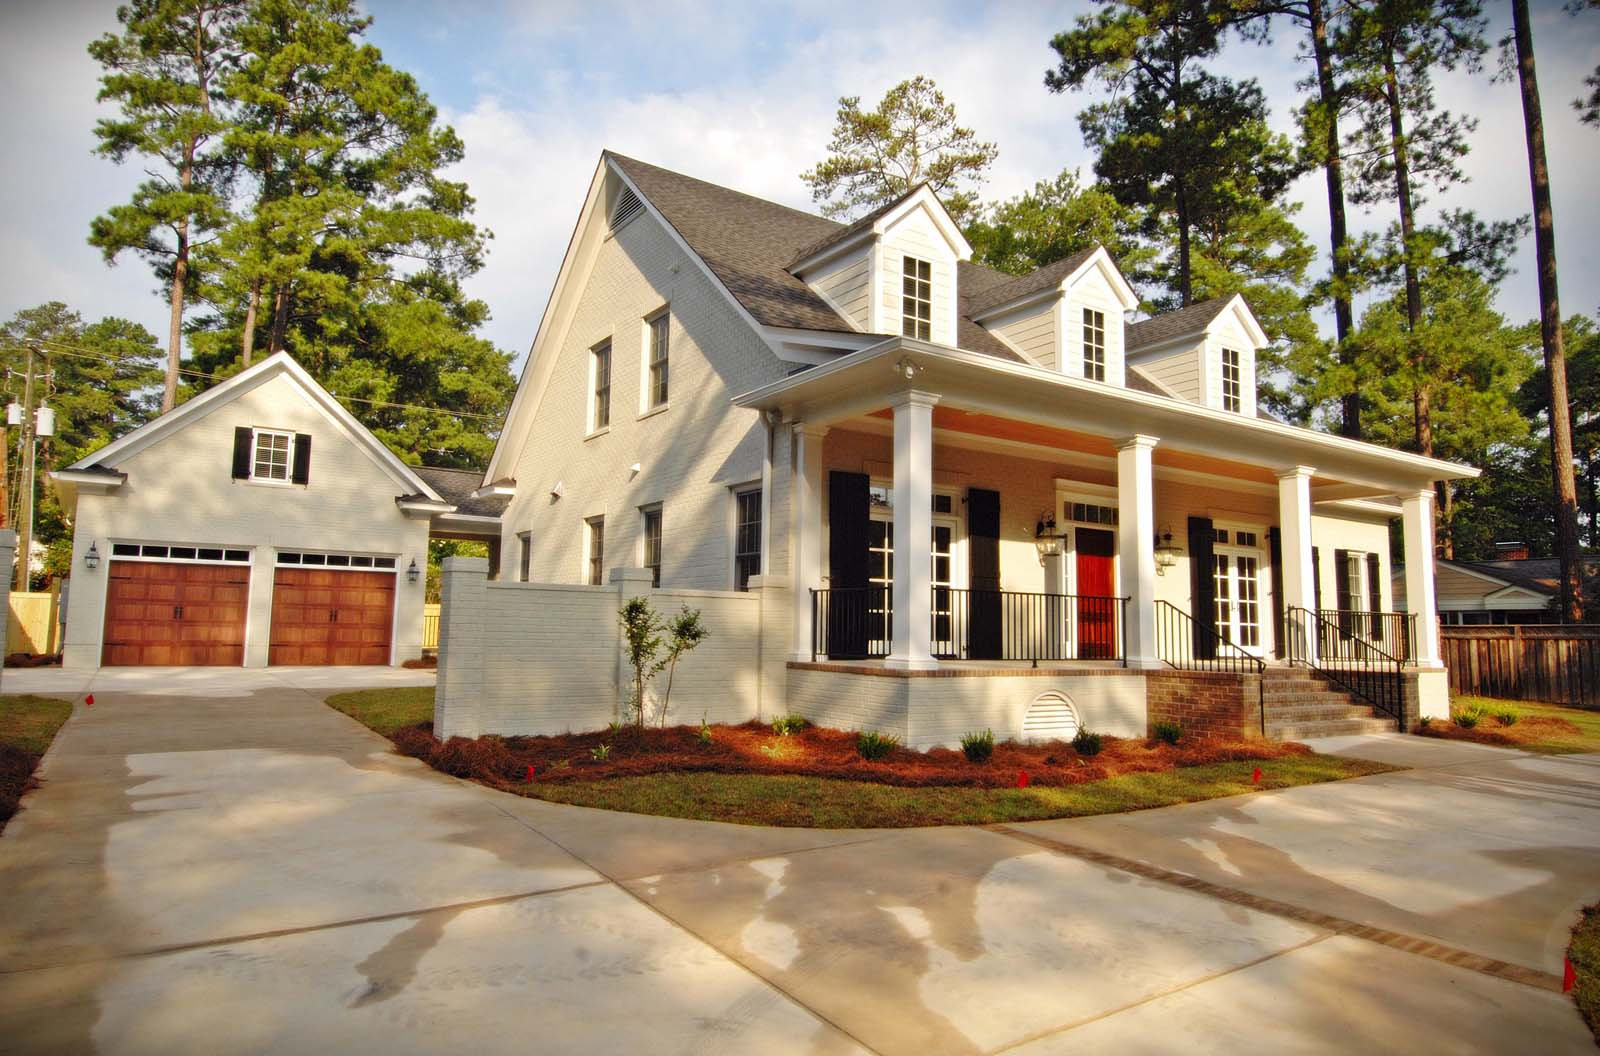 Custom home builders in columbia sc for Columbia sc custom home builders